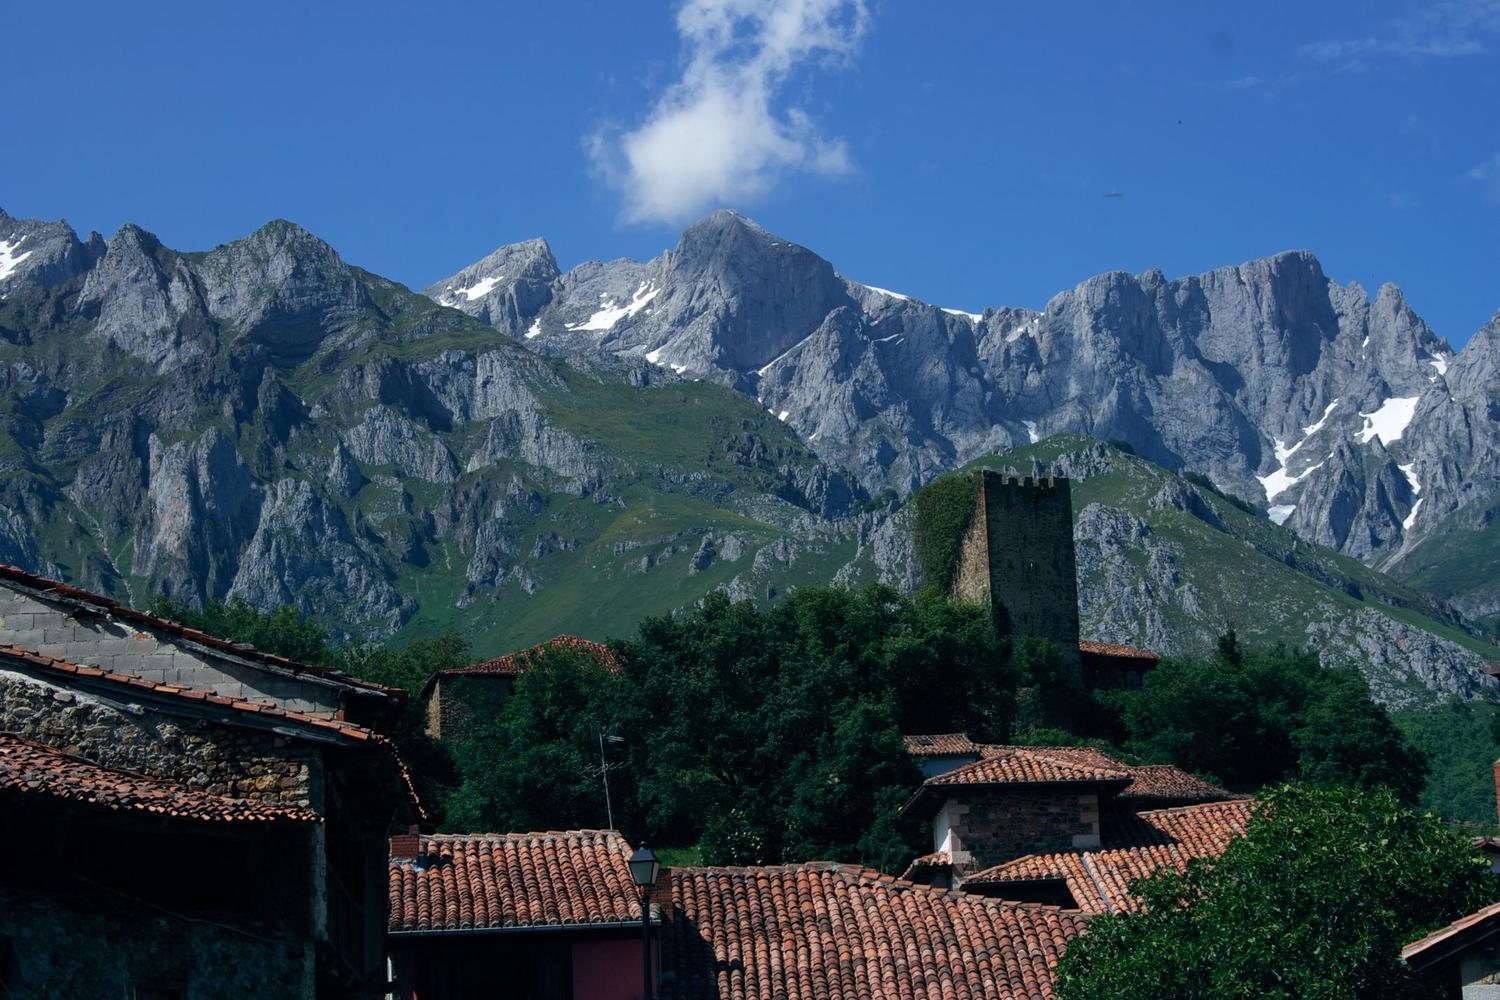 The village of Mogrovejo in the shadow of the high Picos de Europa